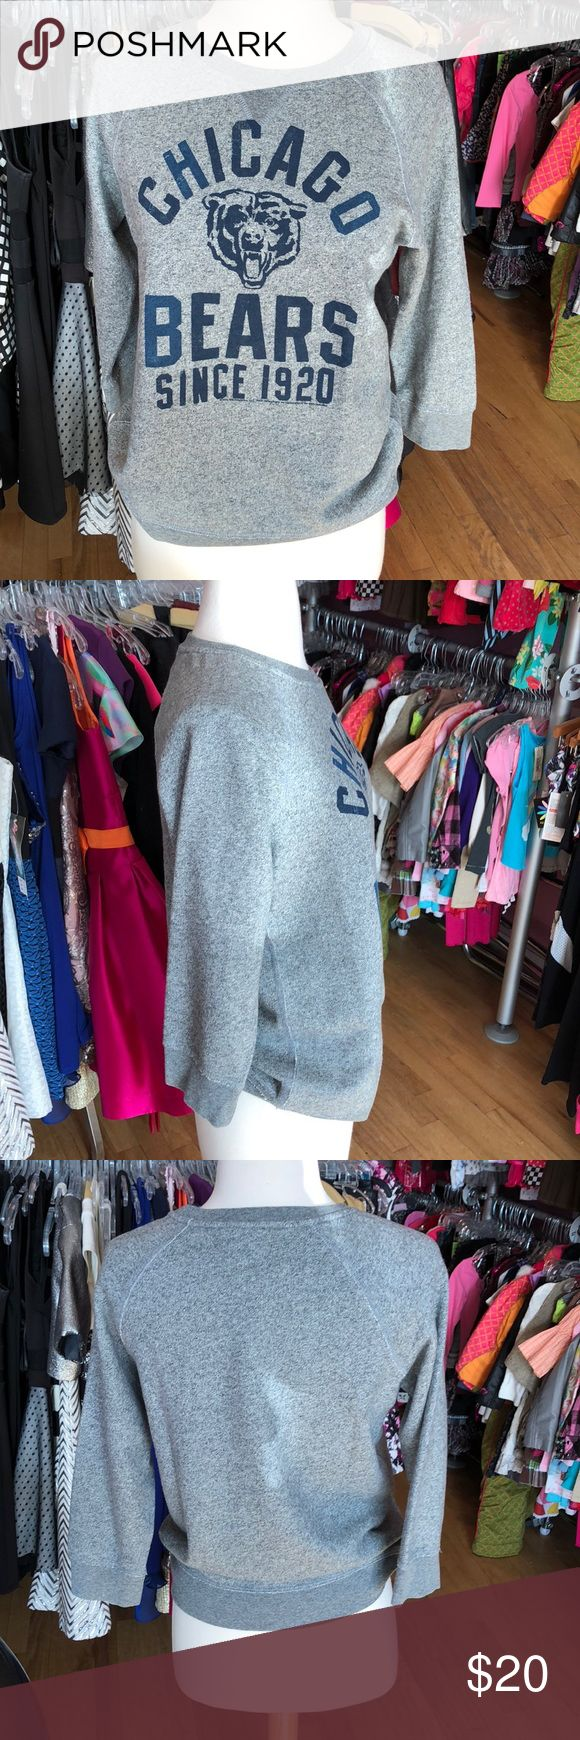 """Junk Food XXL Chicago Bears Sweatshirt Junk Food XXL/14 Chicago Bears Sweatshirt. This grey sweatshirt has a soft cotton material. The """"Chicago Bears since 1920"""" writing is a navy blue color. It's very soft on the inside. Great to lounge in! No signs of wear or pulls. Consigned to my boutique. No trades. Junk Food Tops"""